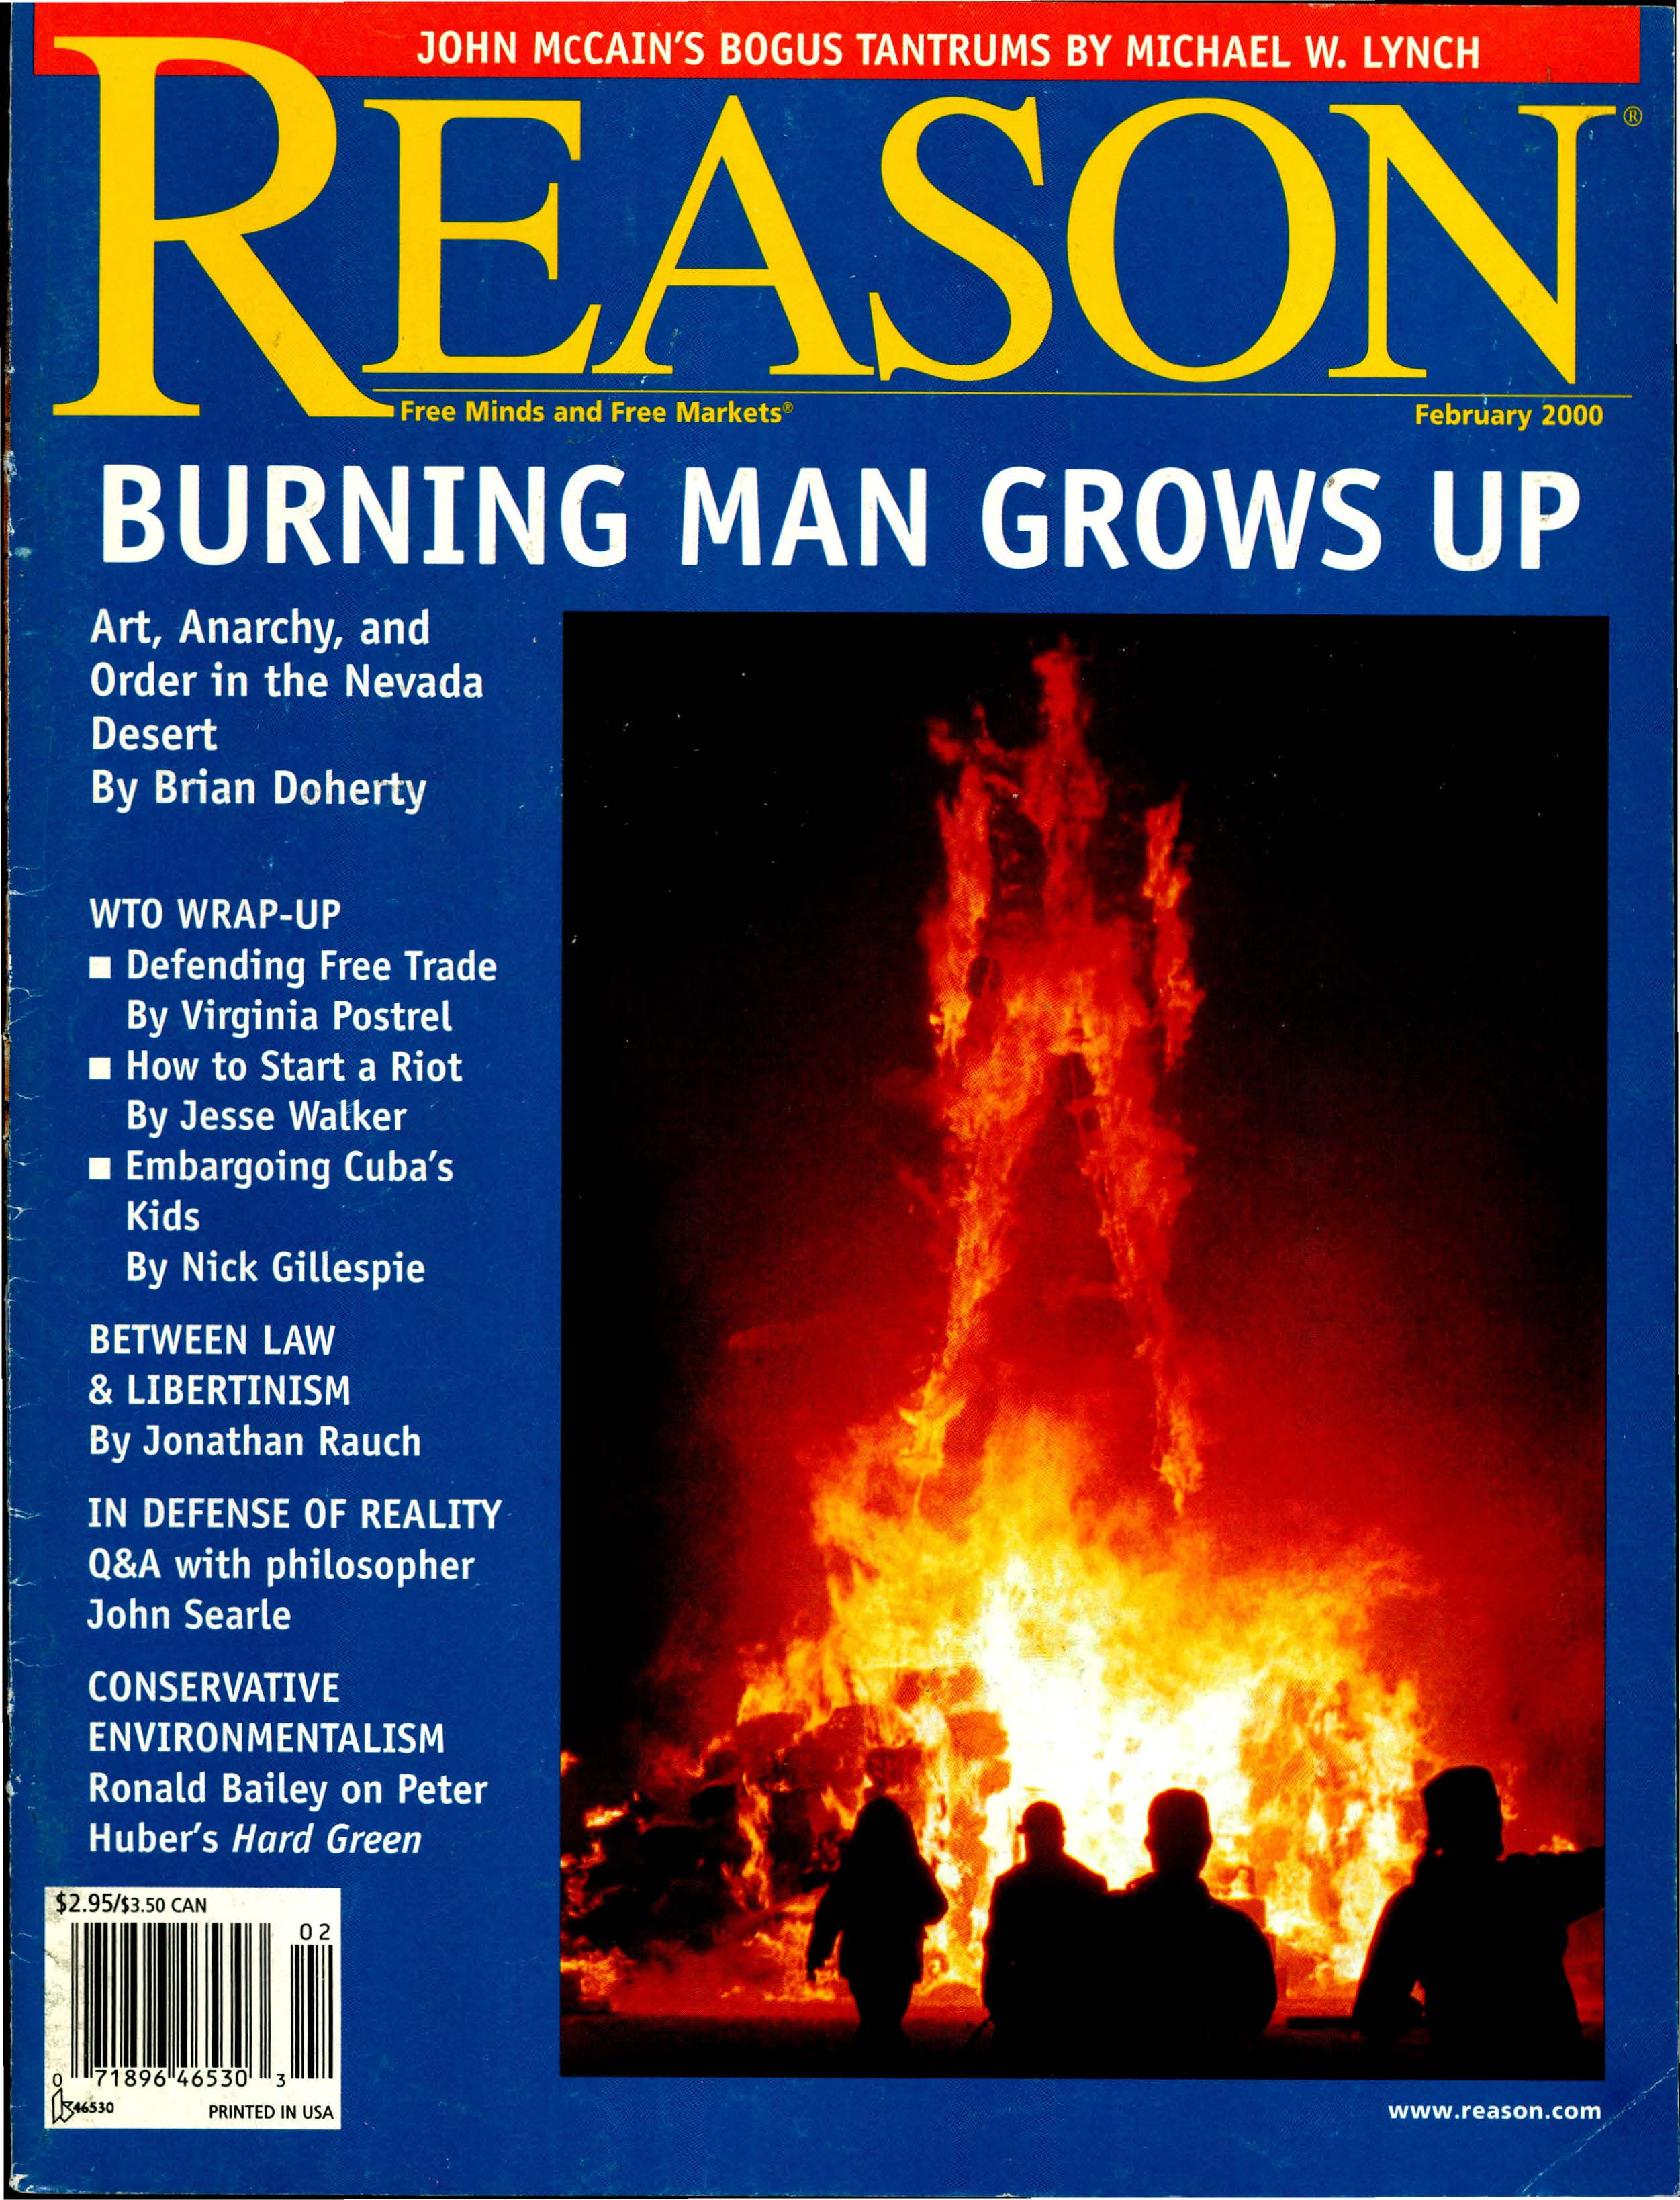 Reason Magazine, February 2000 cover image